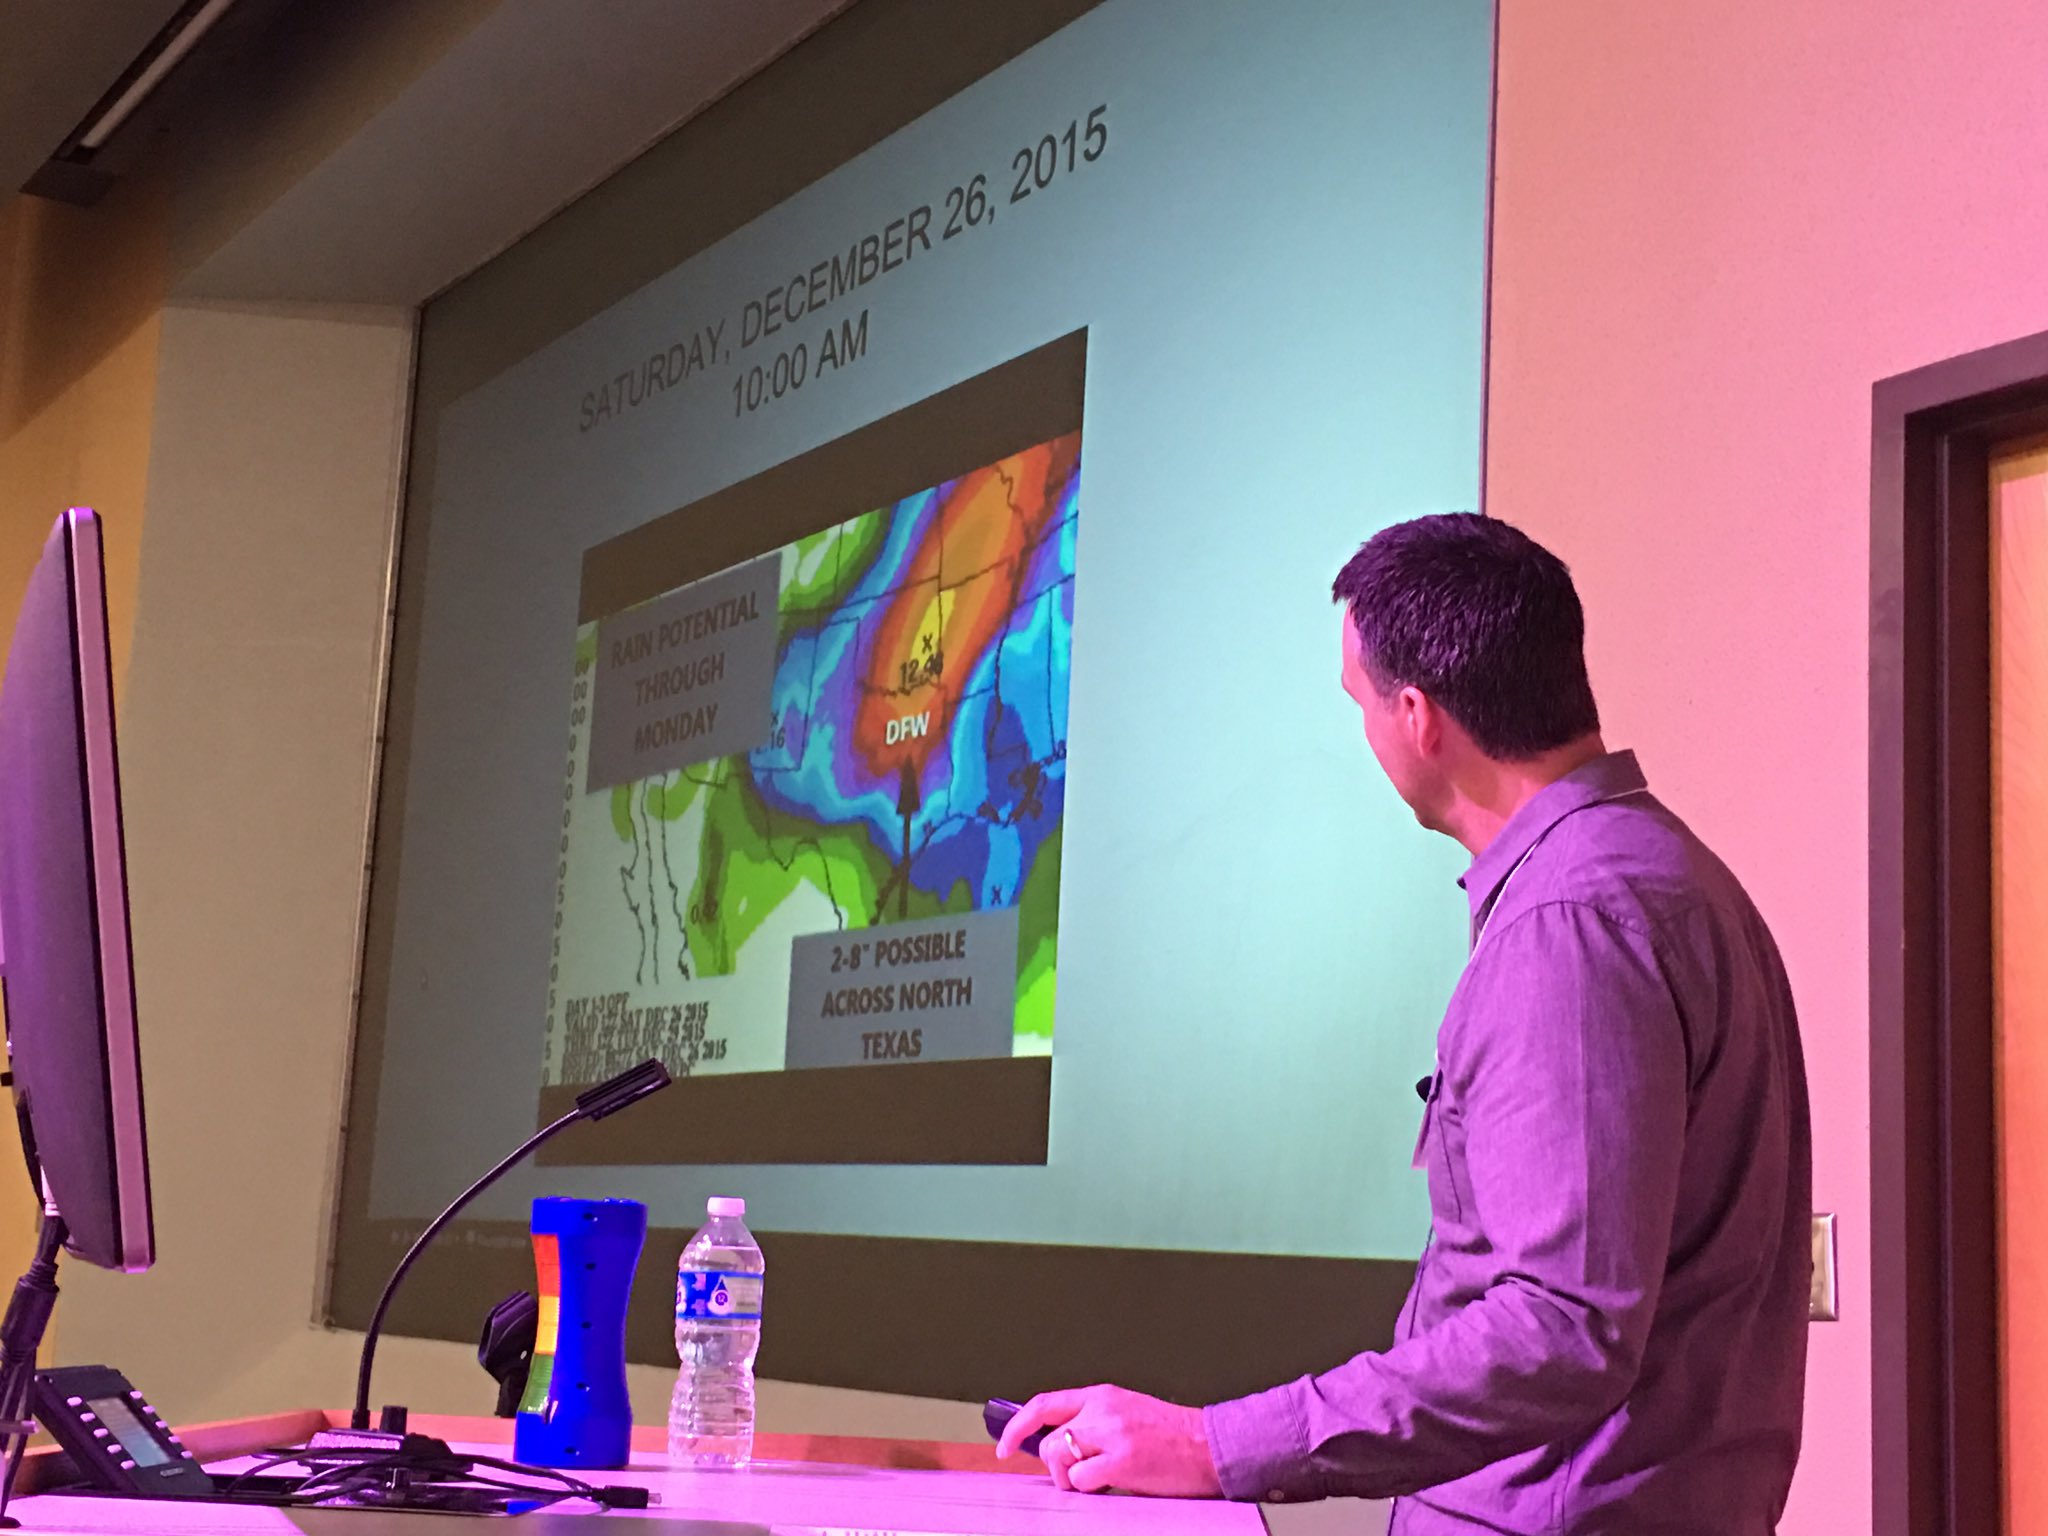 Remember this? Day after Christmas 2015 🌪⛈ @RickMitchellWX presenting on North Texas Outbreak. #TXWX2017 https://t.co/fPOjslANn1